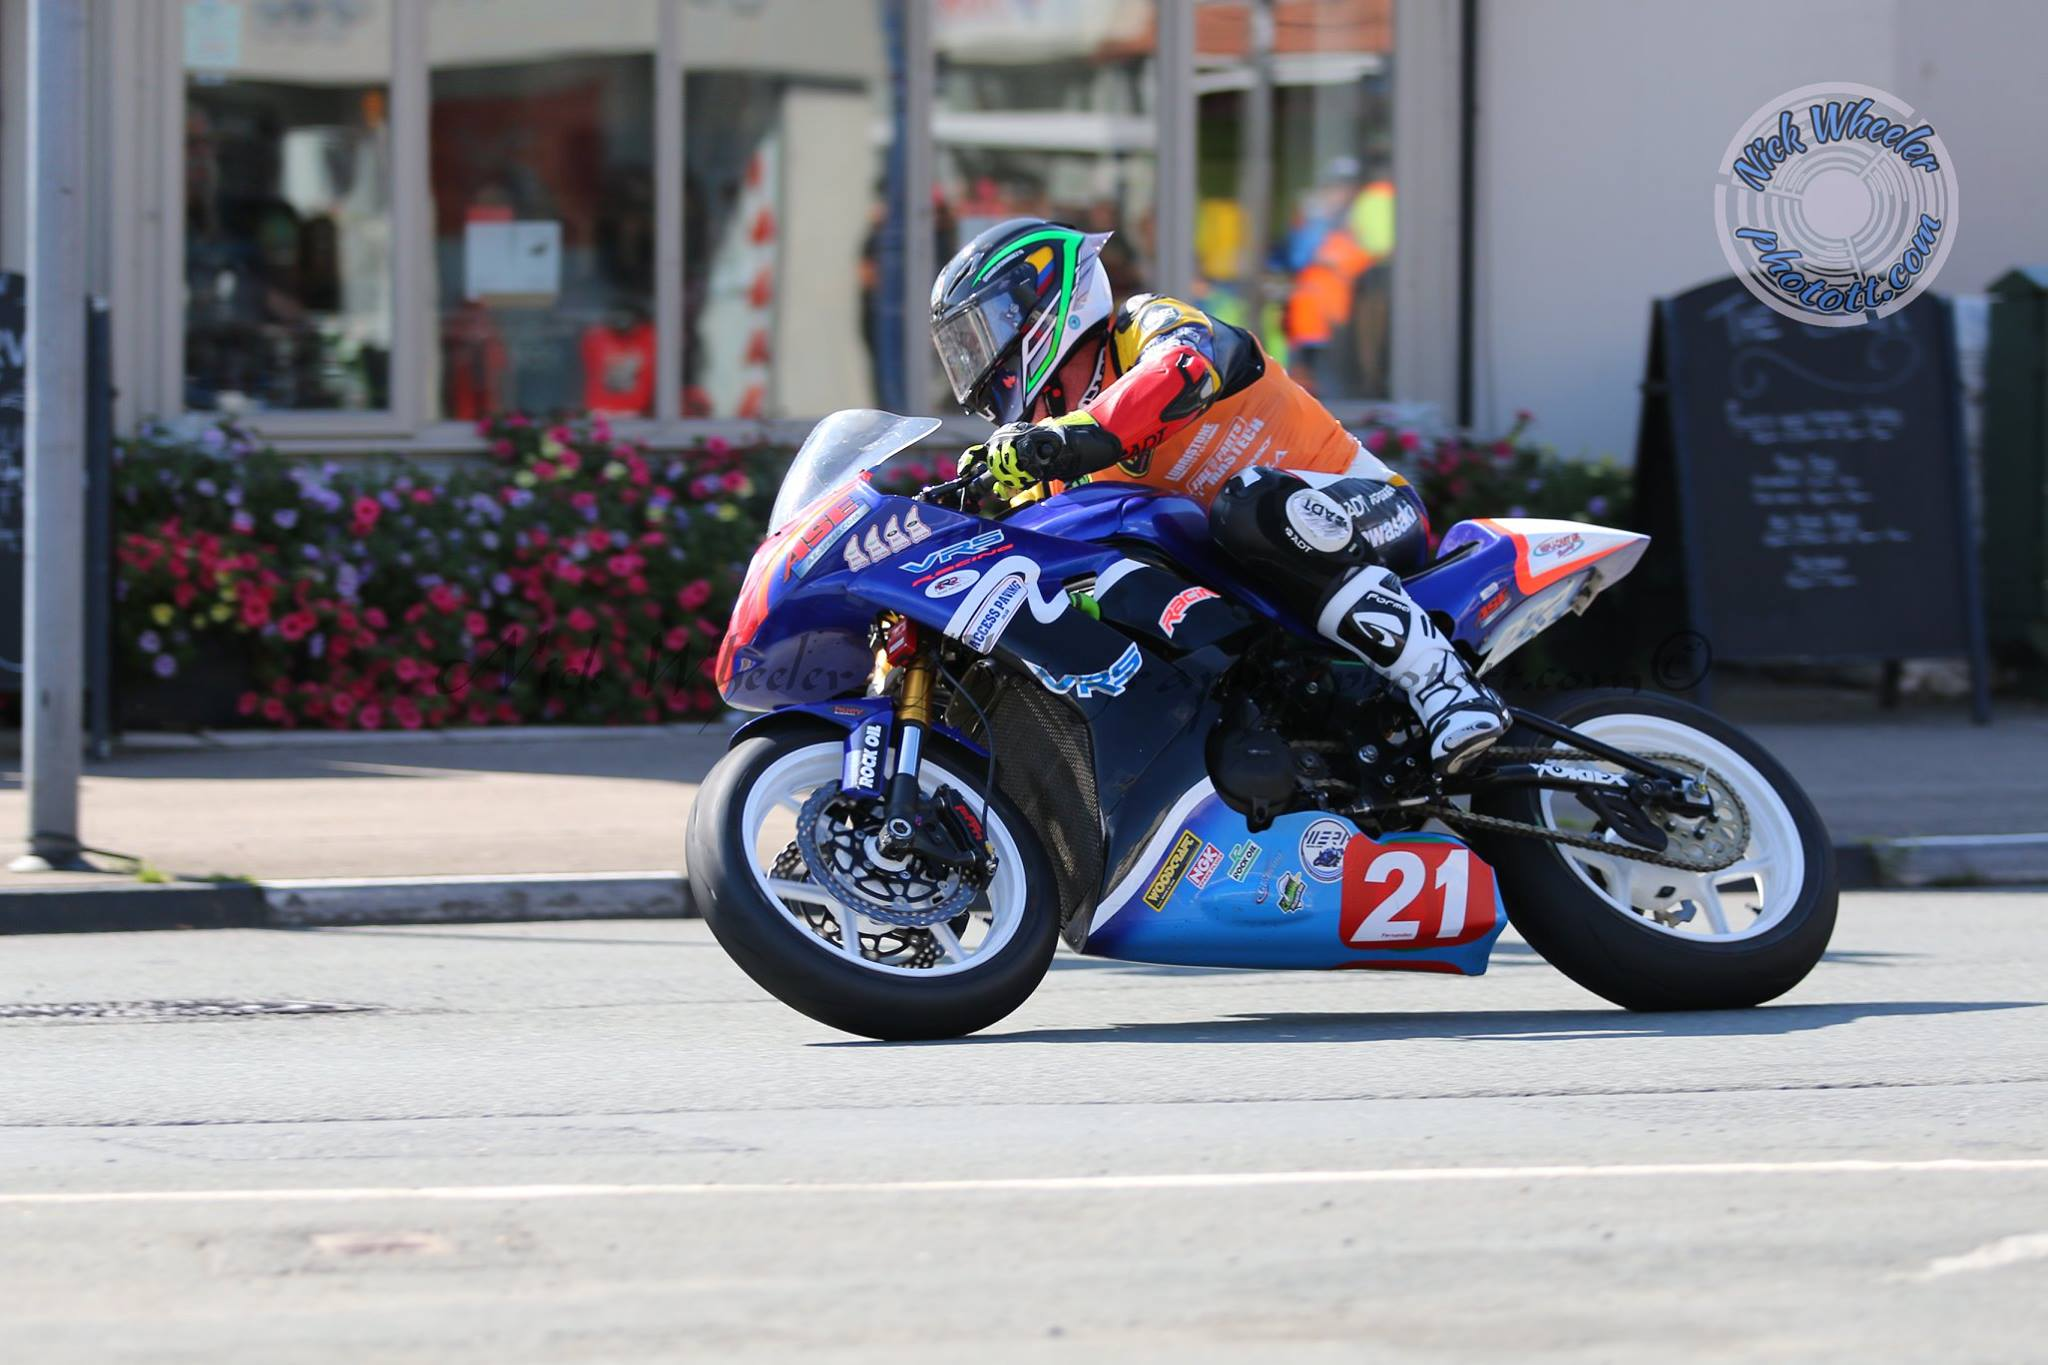 Manx Grand Prix: Newcomers Race Tuesday Bound After Inclement Weather Alters Monday Race Schedule